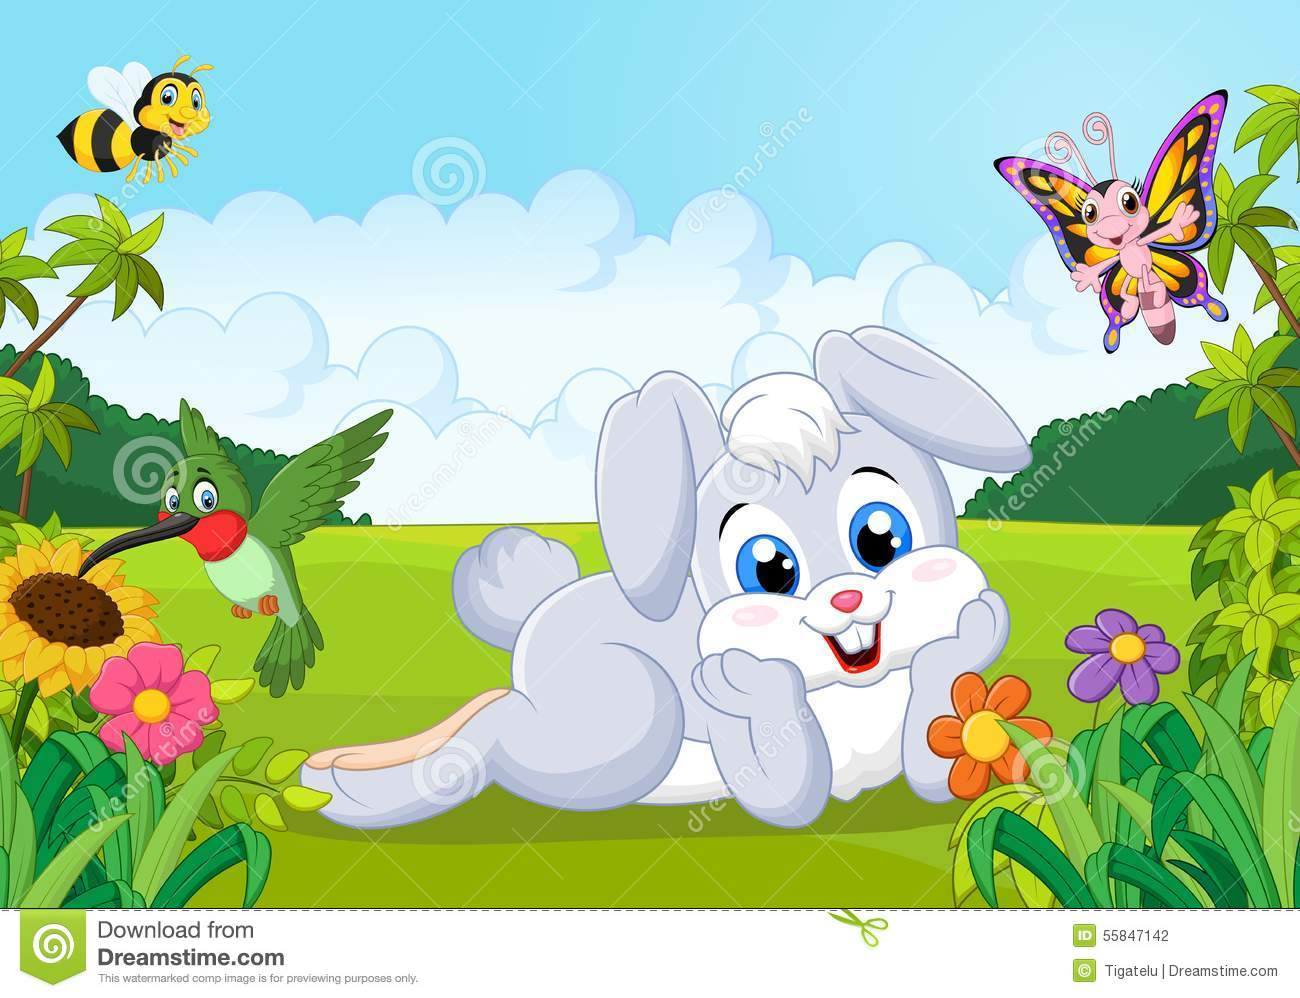 Jungle Animal Wallpaper Cartoon Cute Bunny In The Jungle Stock Vector Image